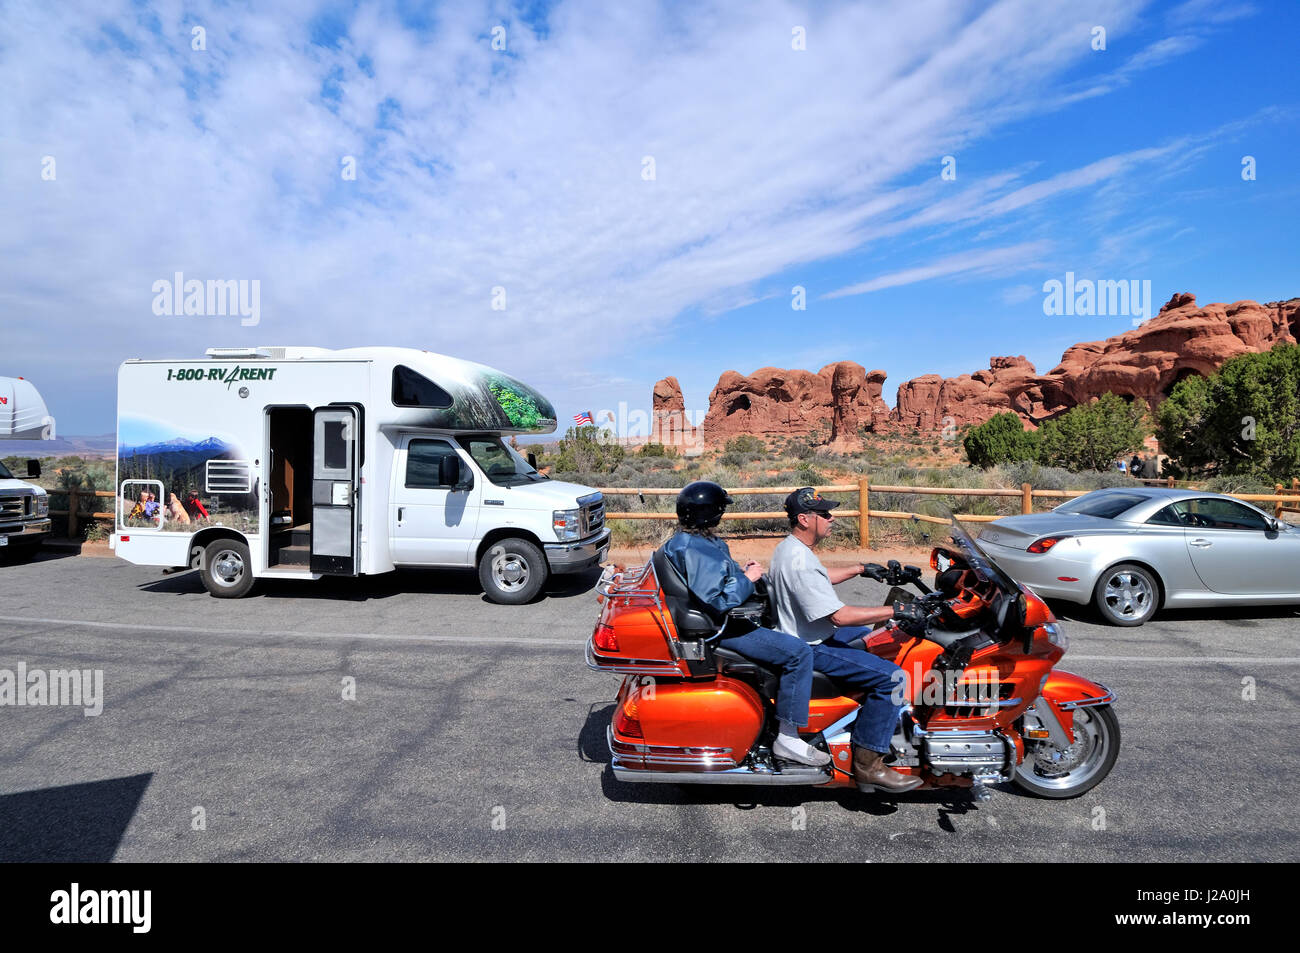 A rented camper and a comfortable motorbike on a parking lot in Arches National Park - Stock Image